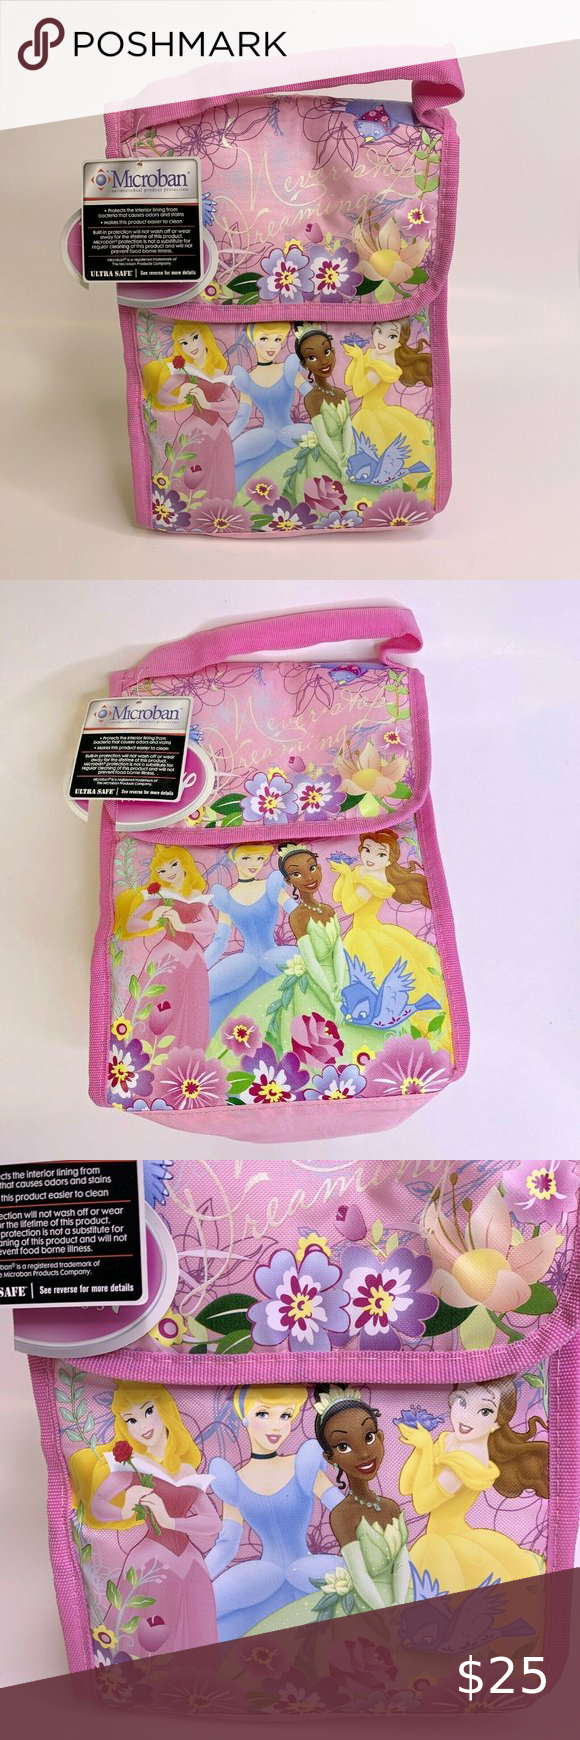 Disney Princess Insulated Lunch Pack Pink New New Disney Princesses Minnie Mouse Mug Disney Princess